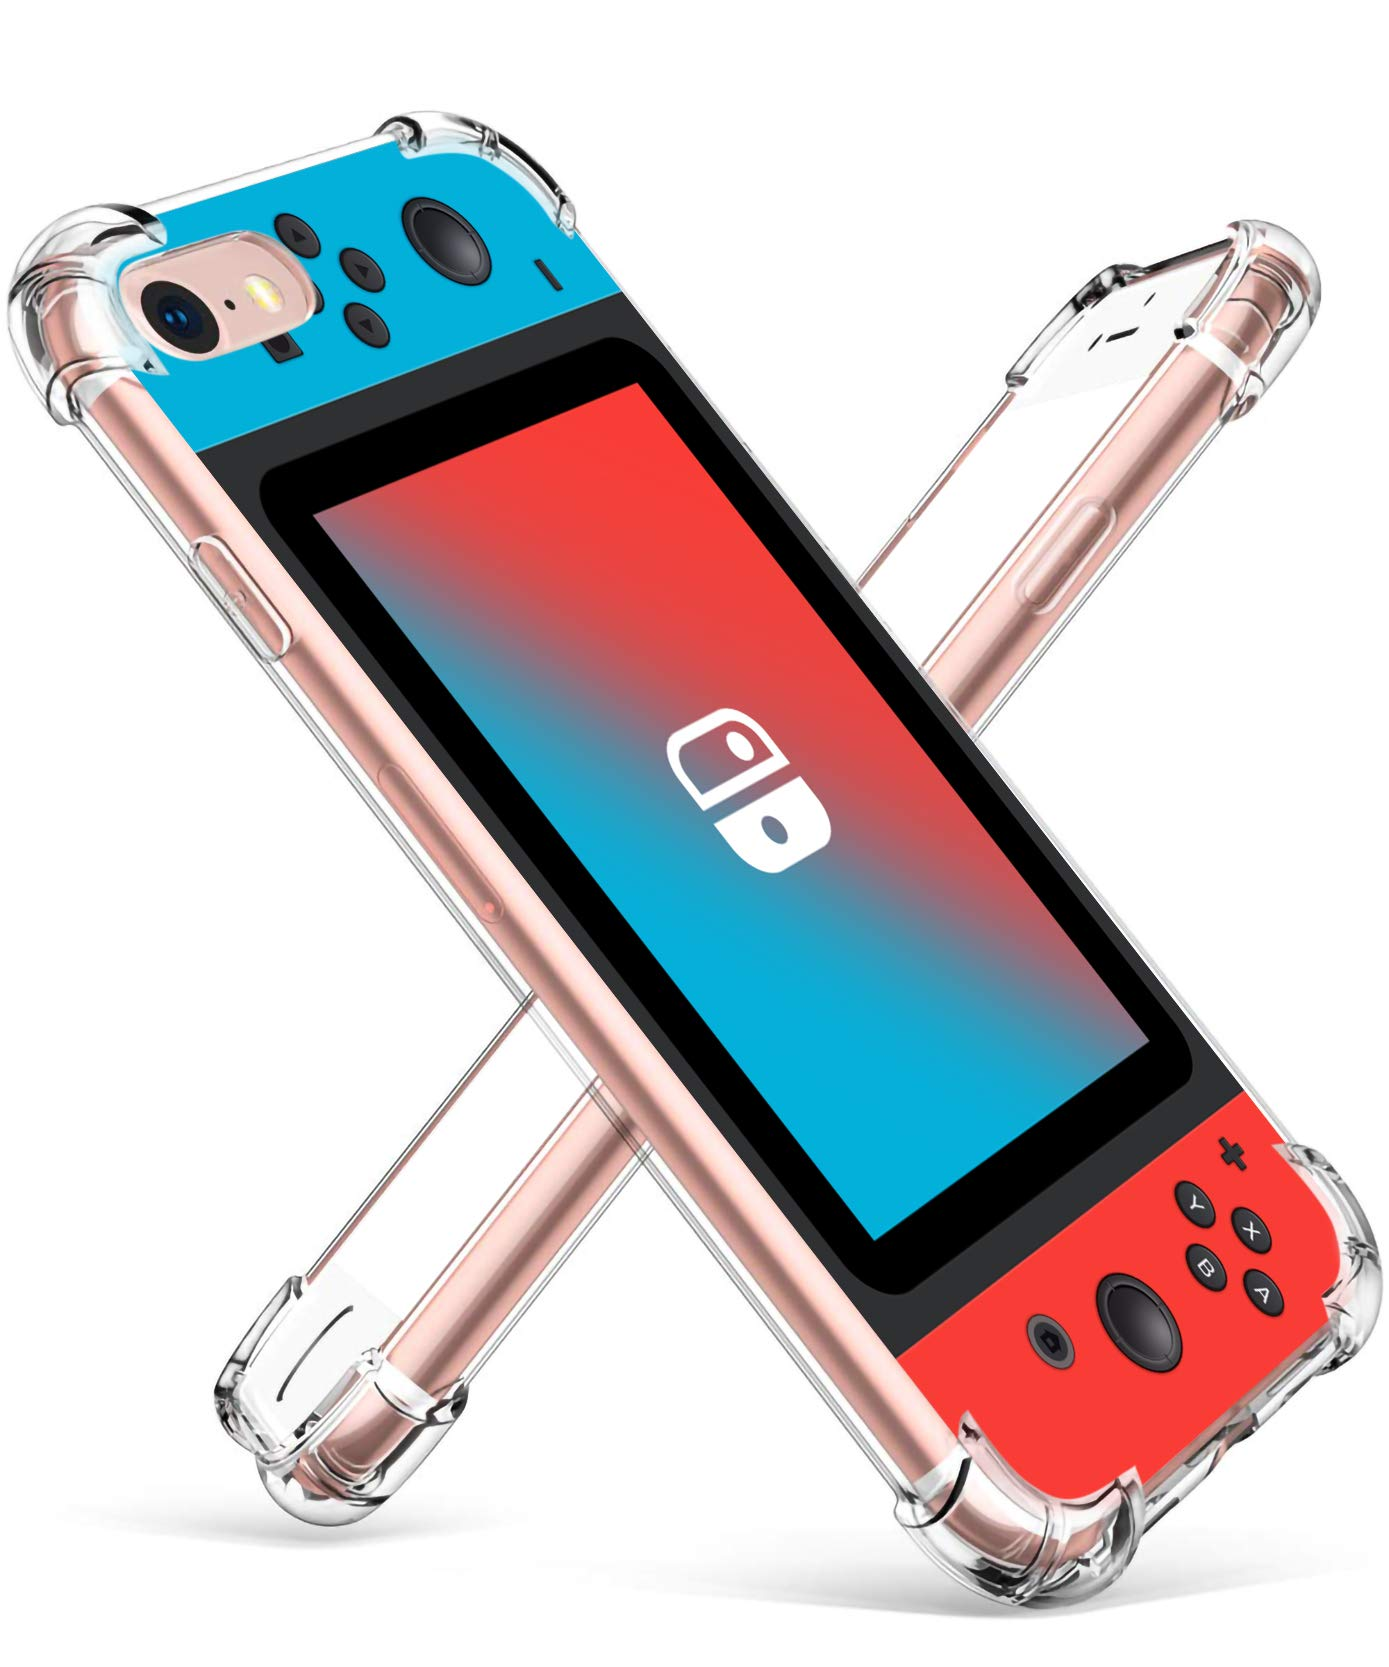 """Coralogo for iPhone 7/8 TPU Case, Cute Cartoon Funny Design Stylish Slim Ultra Clear Protective Fashion Fun Cool Bumper Cover Skin Teens Kids Girls Boys Cases for iPhone 7/8 4.7"""" (Blue Red Games"""